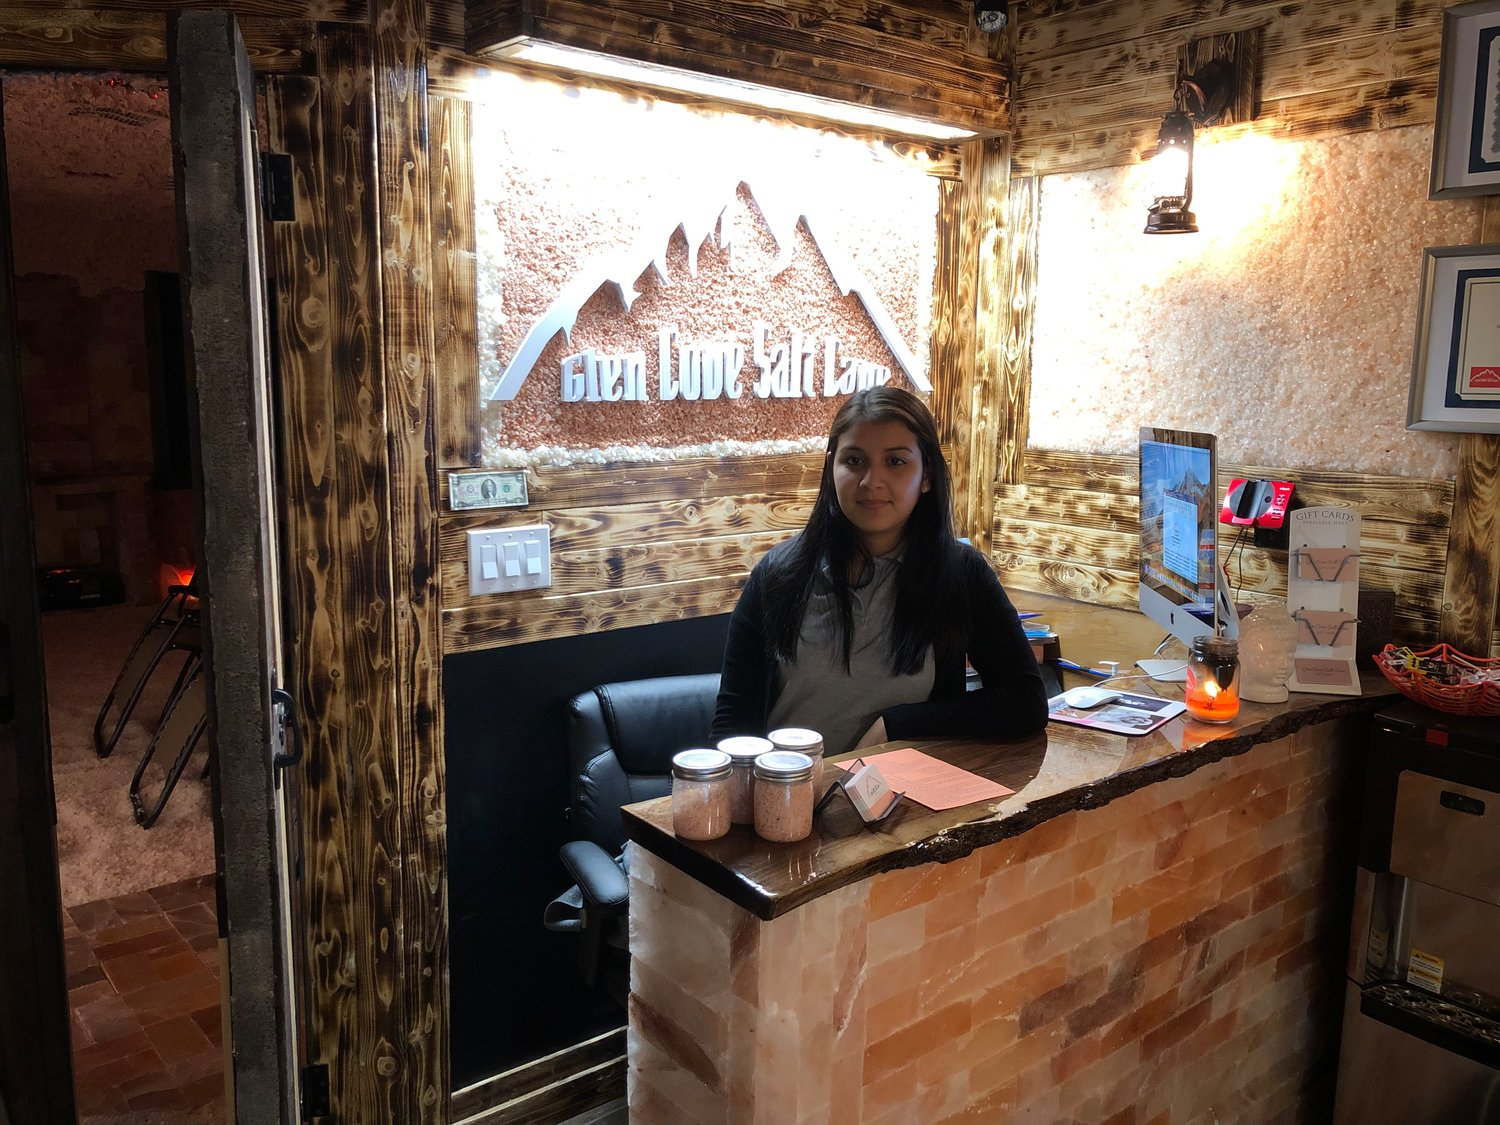 Glen Cove resident Yajhayra Reyes was inspired to open the city's very first salt cave after she struggled with eczema growing up.